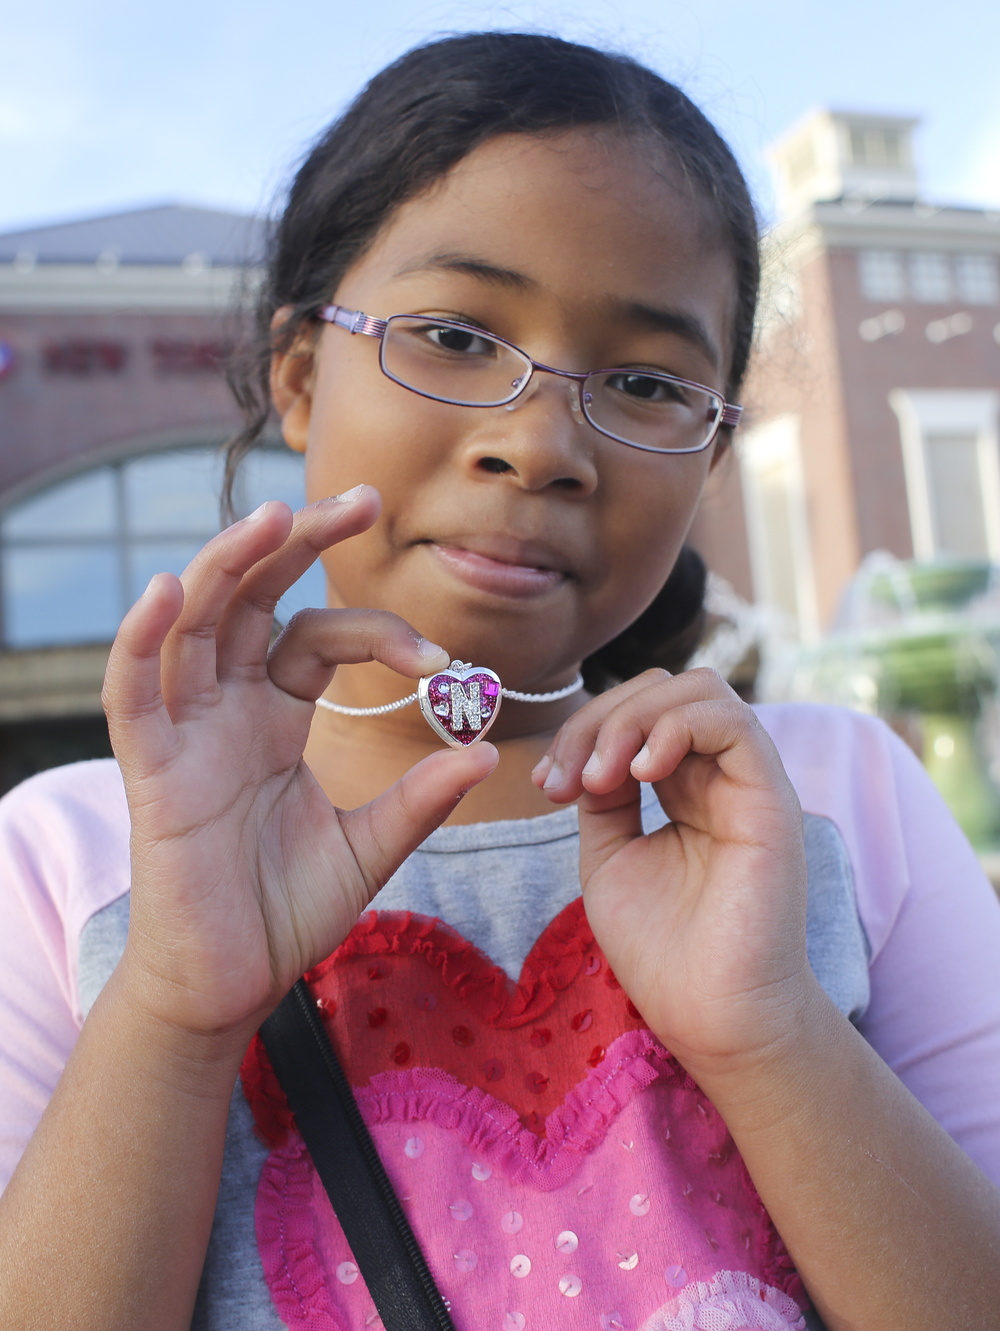 "Nina Gokita, 10, shows off her Black Friday purchase, a heart locket with the letter N at Justice in New Town Williamsburg, Friday, Nov. 27, 2015. According to her mother Tonya Gokita, Williamsburg, Nina bought the locket with her birthday money. ""I bought this for 40% off and I'm happy, Nina said. (Sonya Paclob / Special to the Daily Press)"